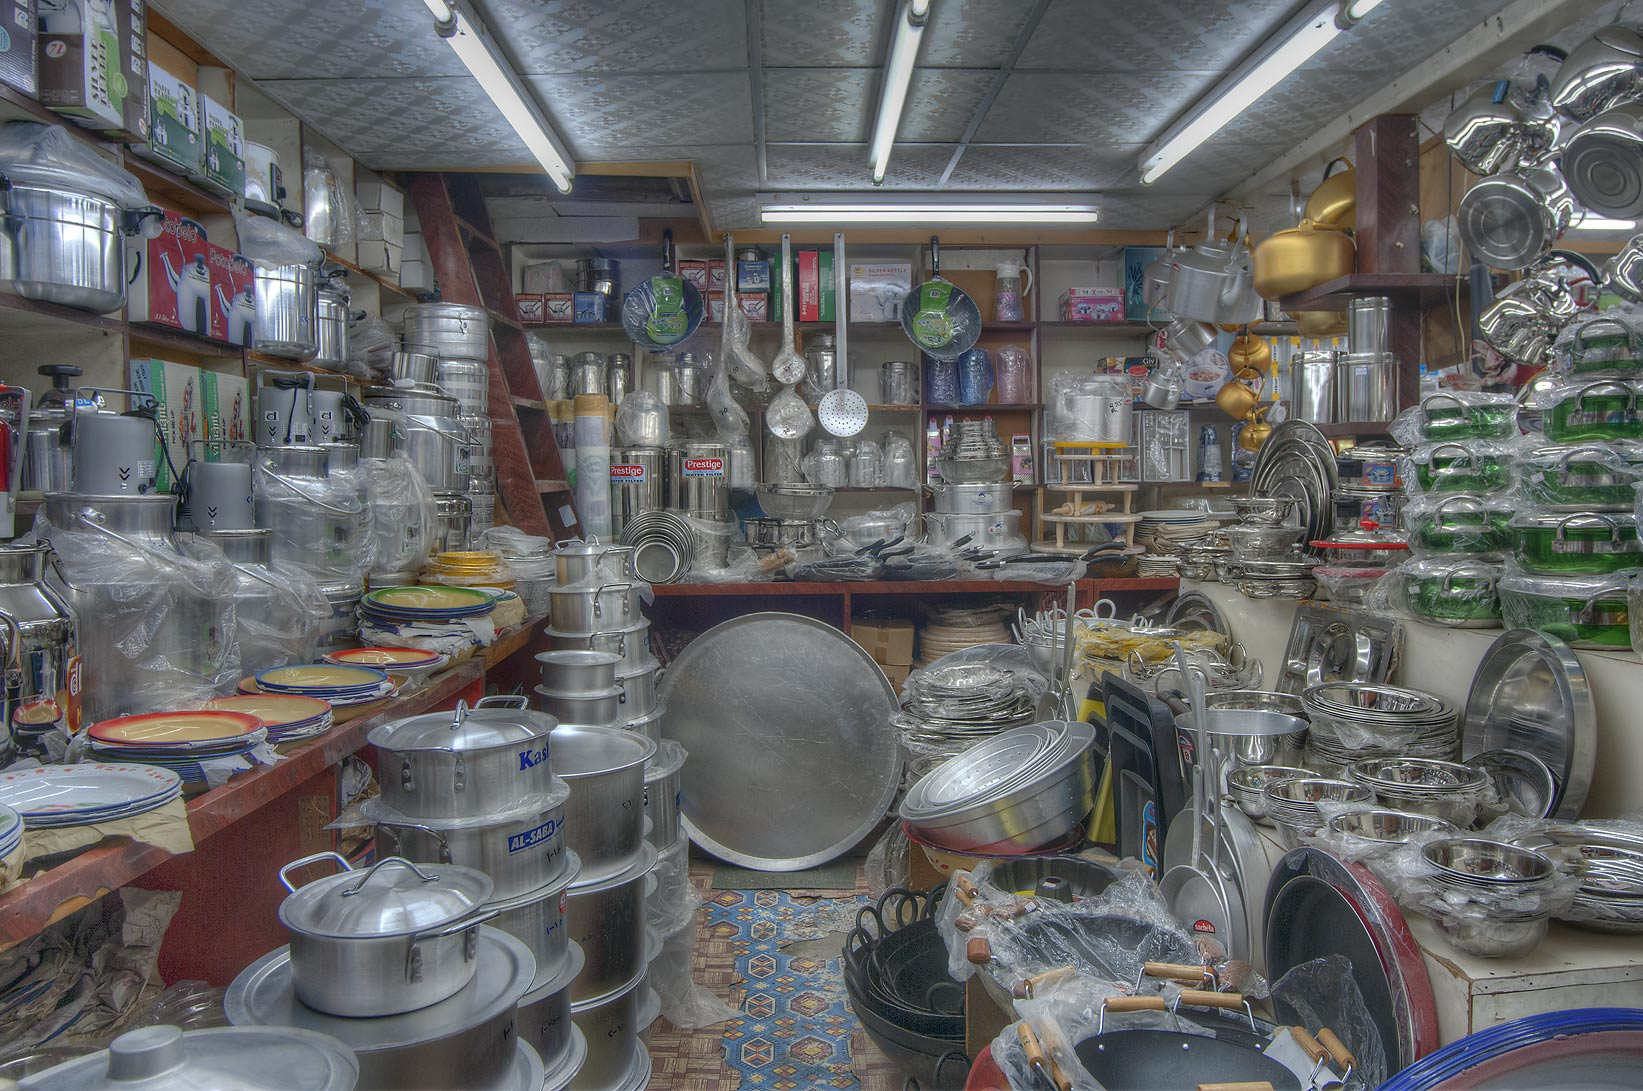 Kitchenware store in Souq Waqif (Old Market). Doha, Qatar